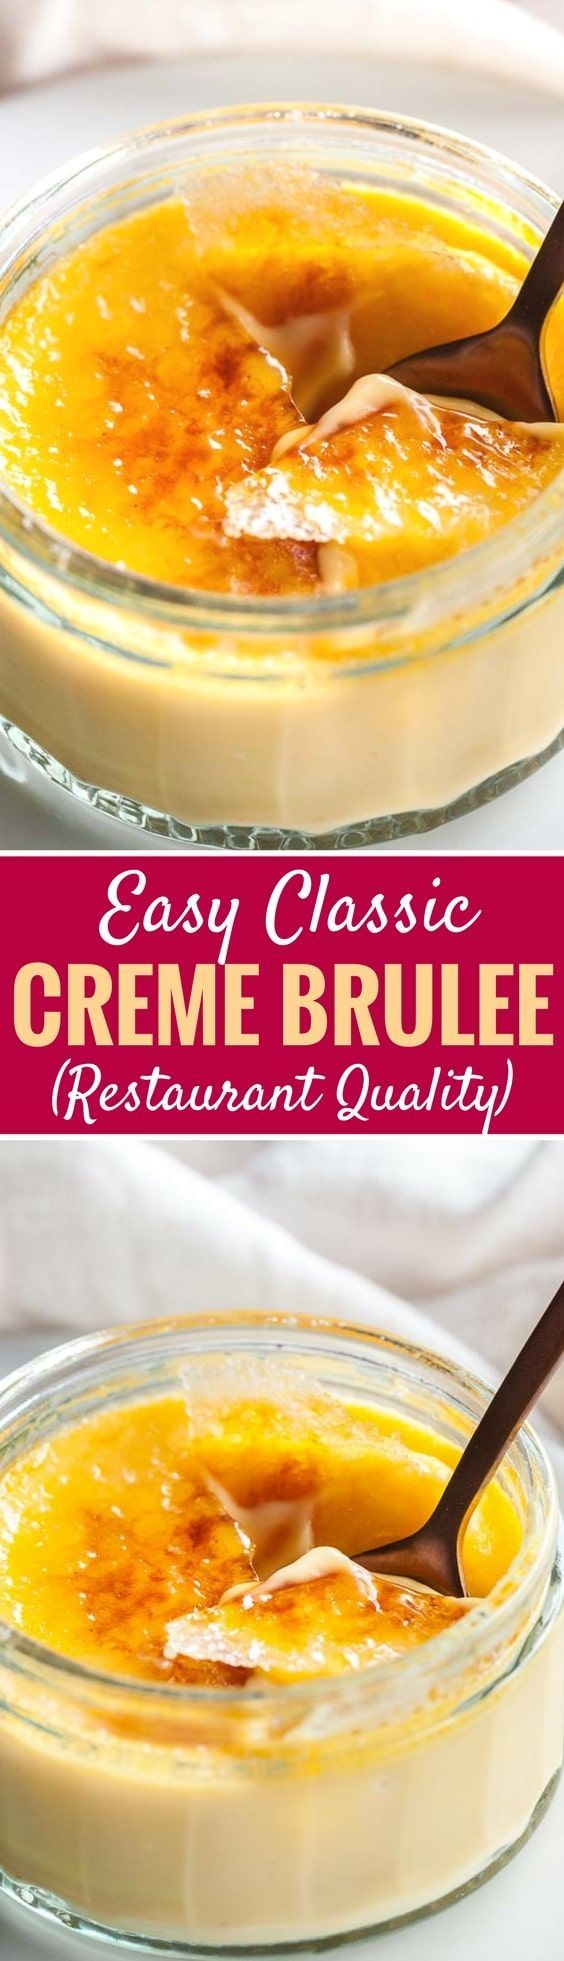 Easy Creme Brulee is the perfect make-ahead dessert that will impress your guests! A silky, smooth vanilla custard topped with a layer of brittle caramel, that is easier to make at home than you think. This classic French dessert is very do-able and so delicious! #cremebrulee #desserts #frenchcuisine #easydesserts